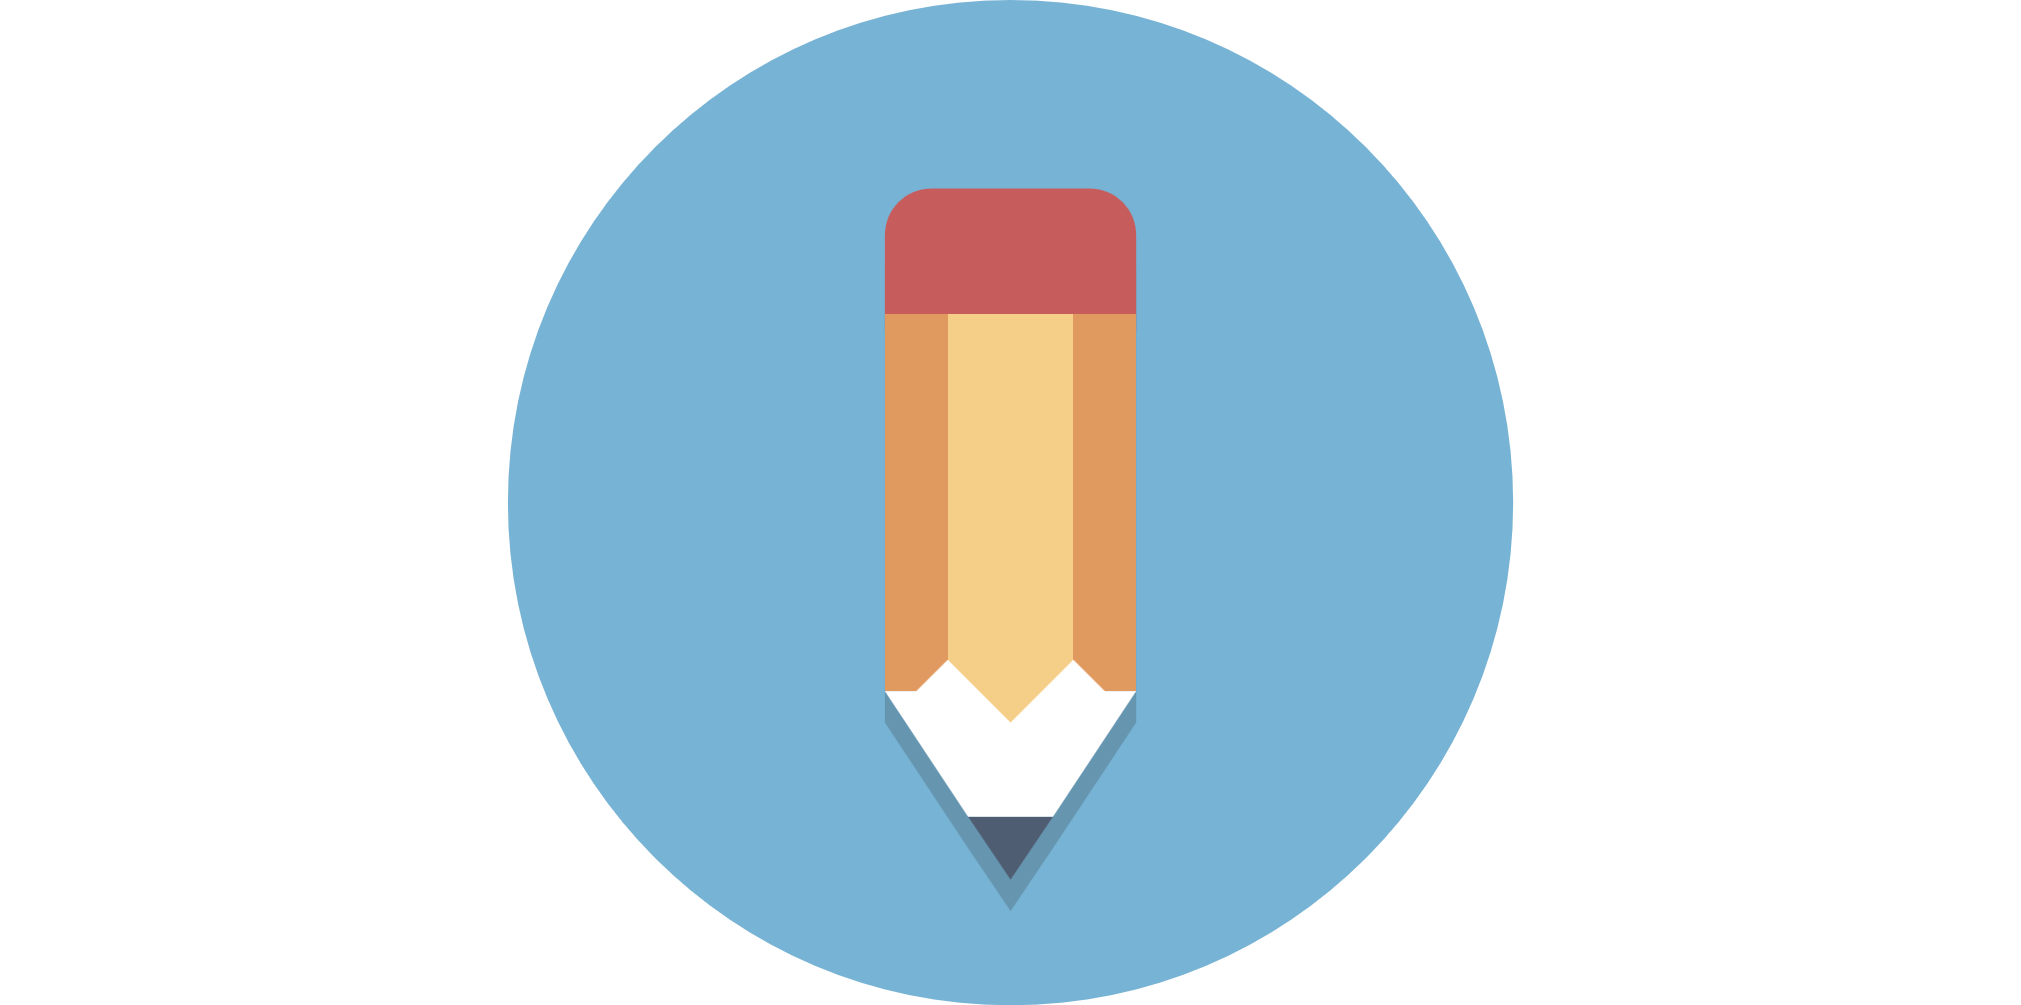 Pencil circle png. Site assets icons circleiconspencil